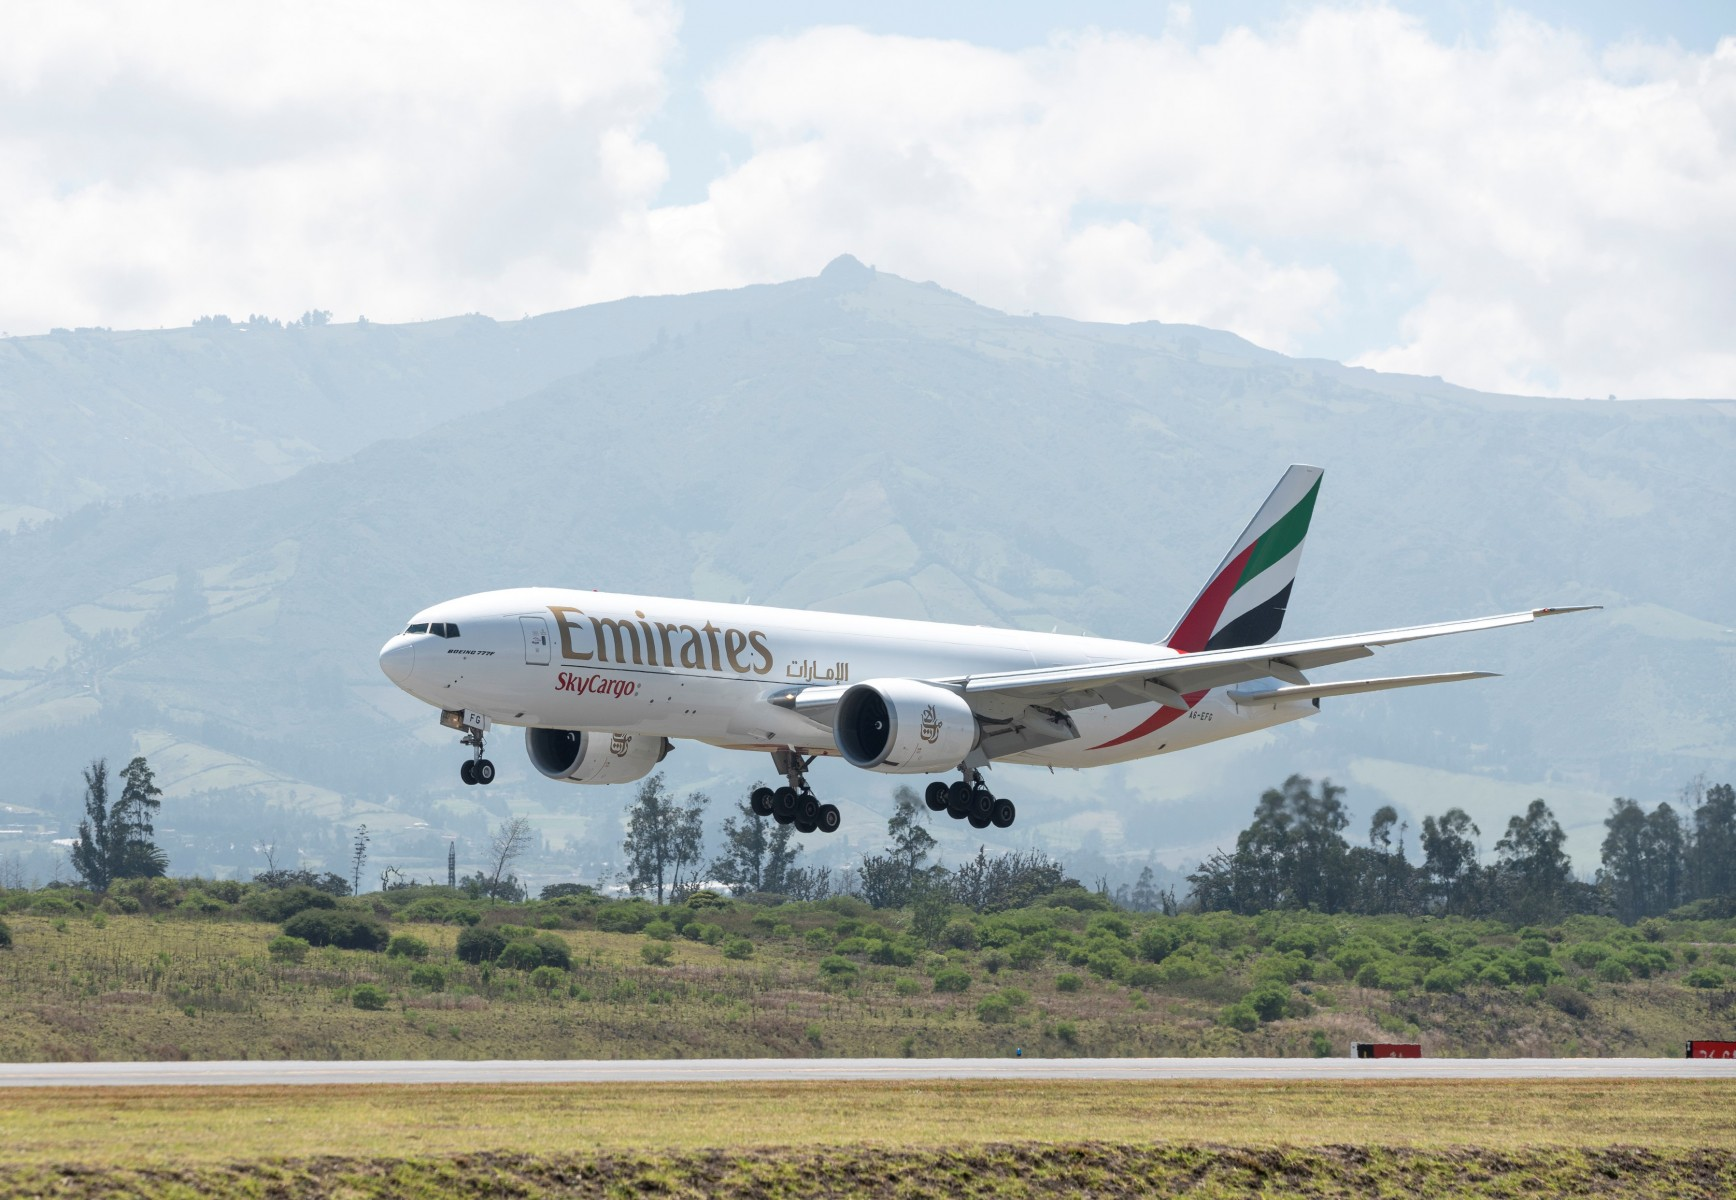 Emirates SkyCargo Freighter- supporting farming communities by transporting food produce